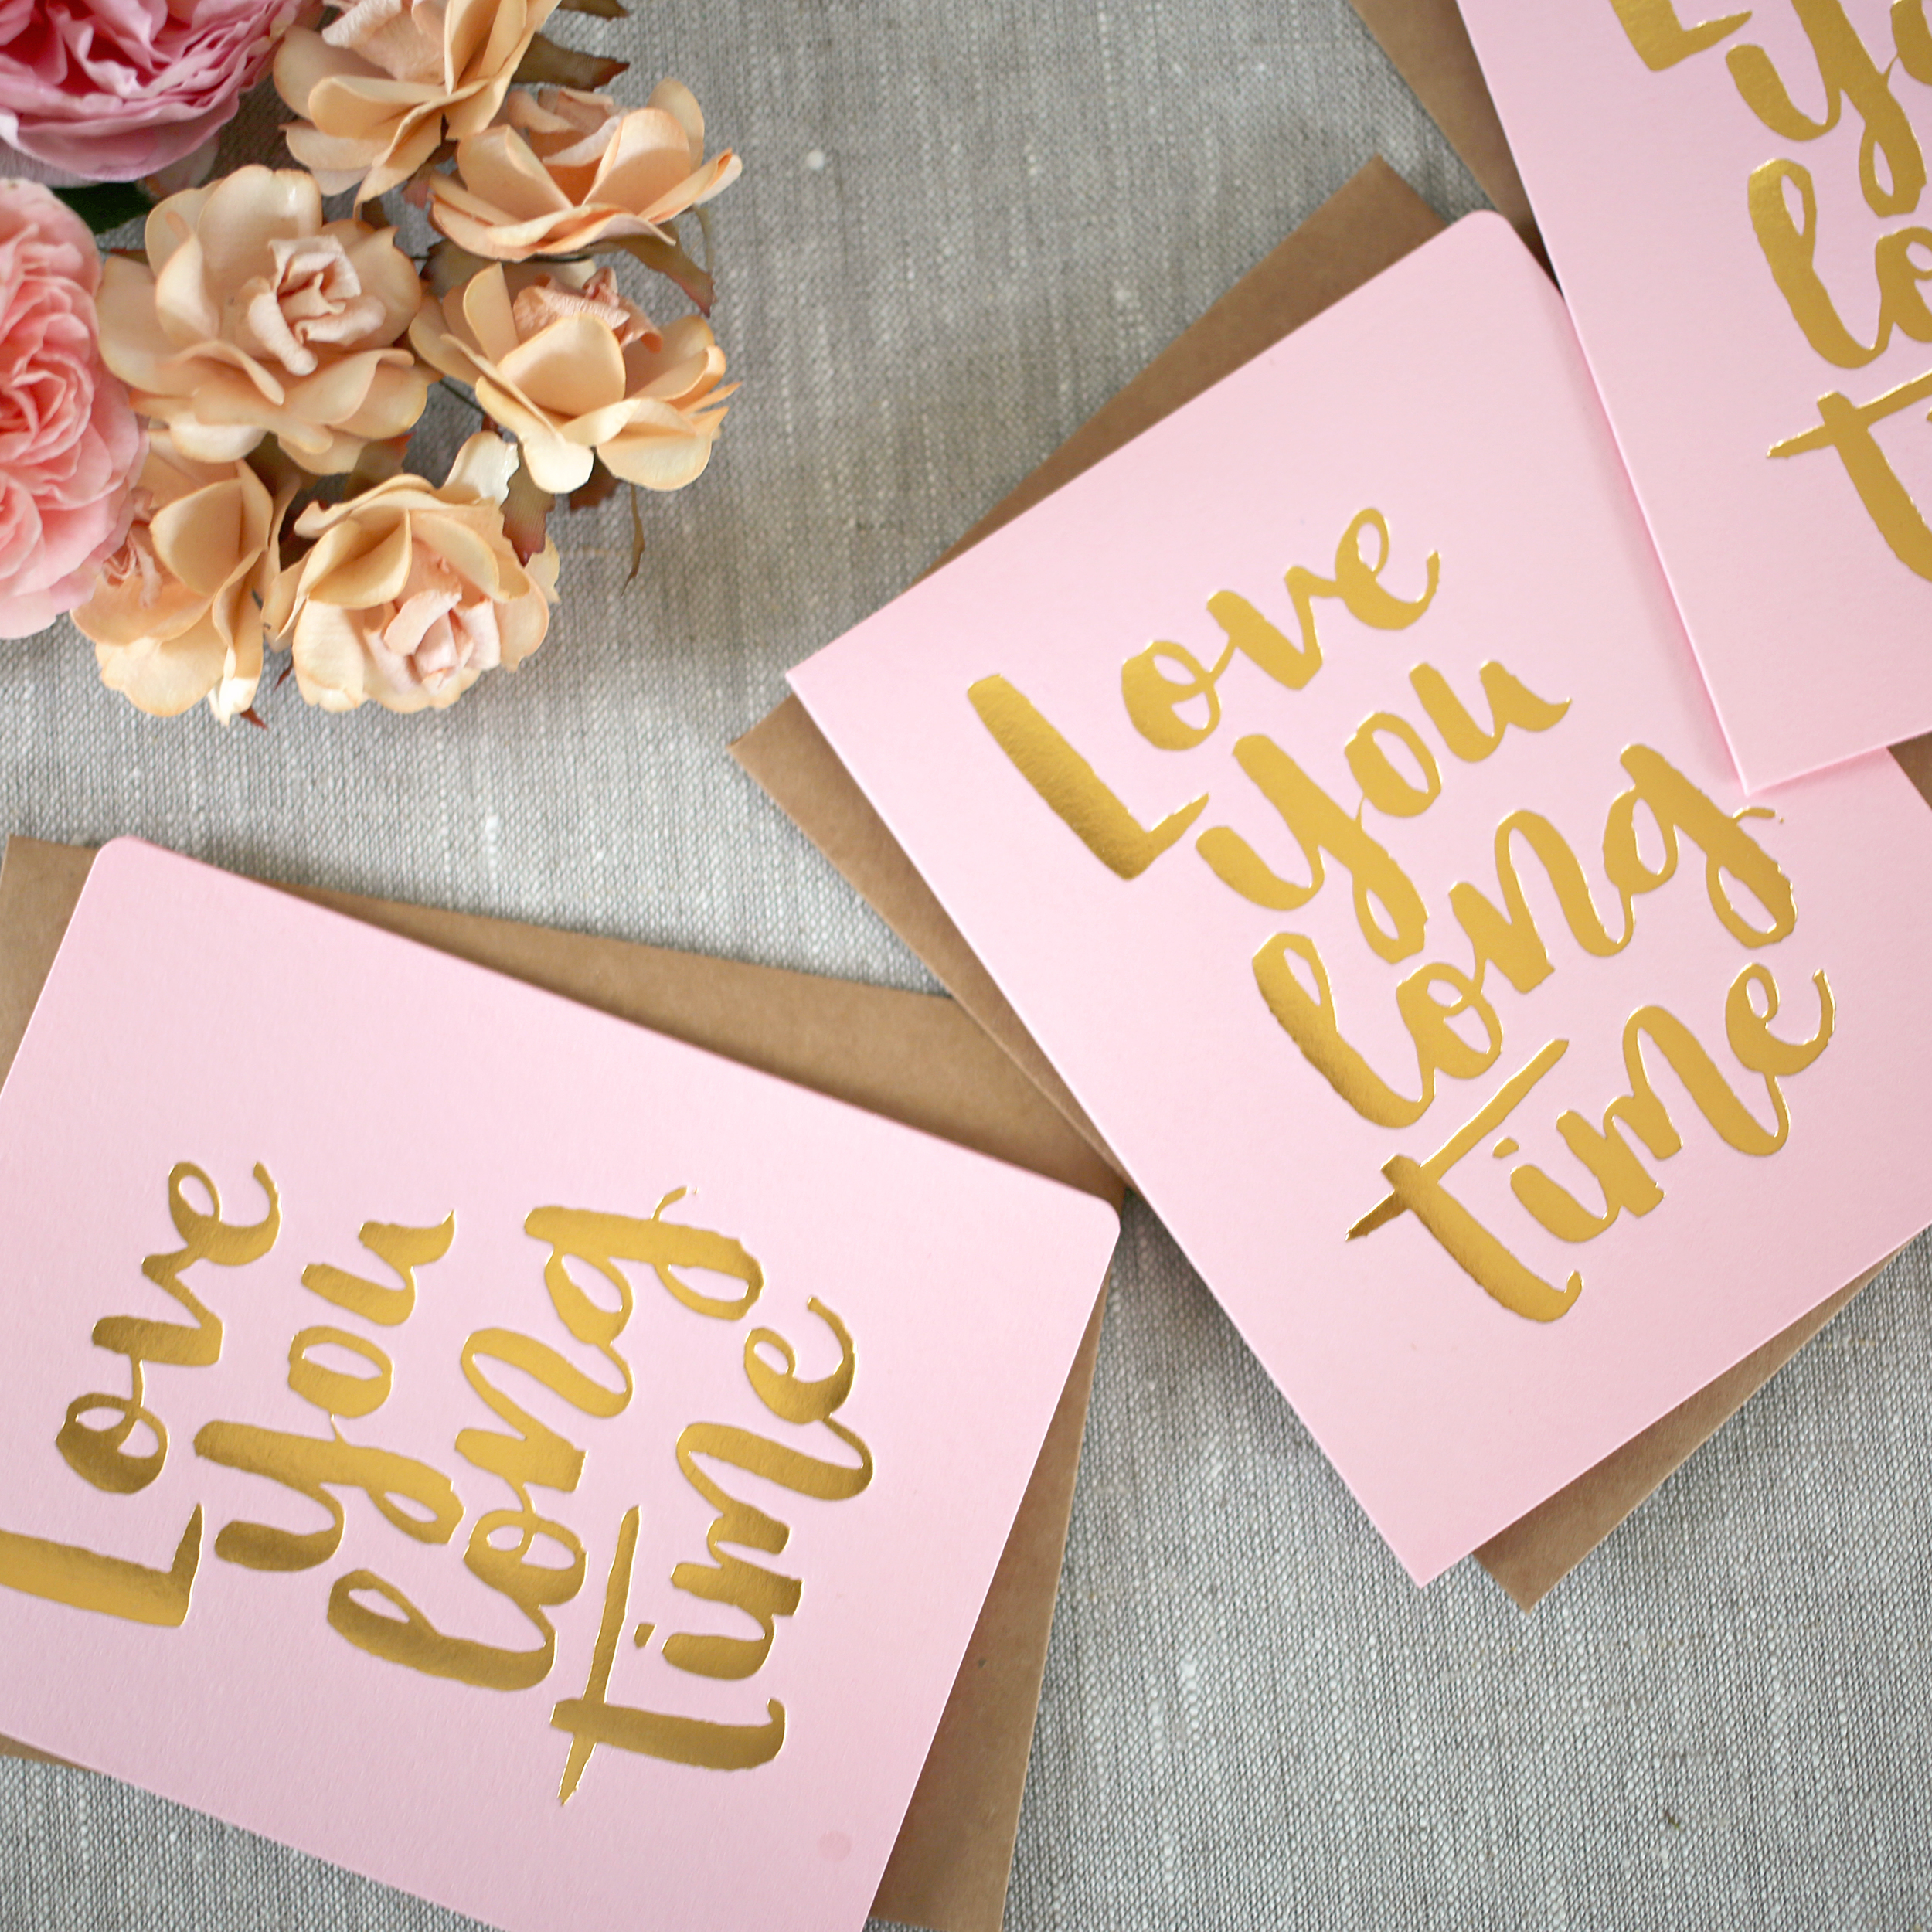 Love You Long Time.  Photo from Bespoke Letterpress